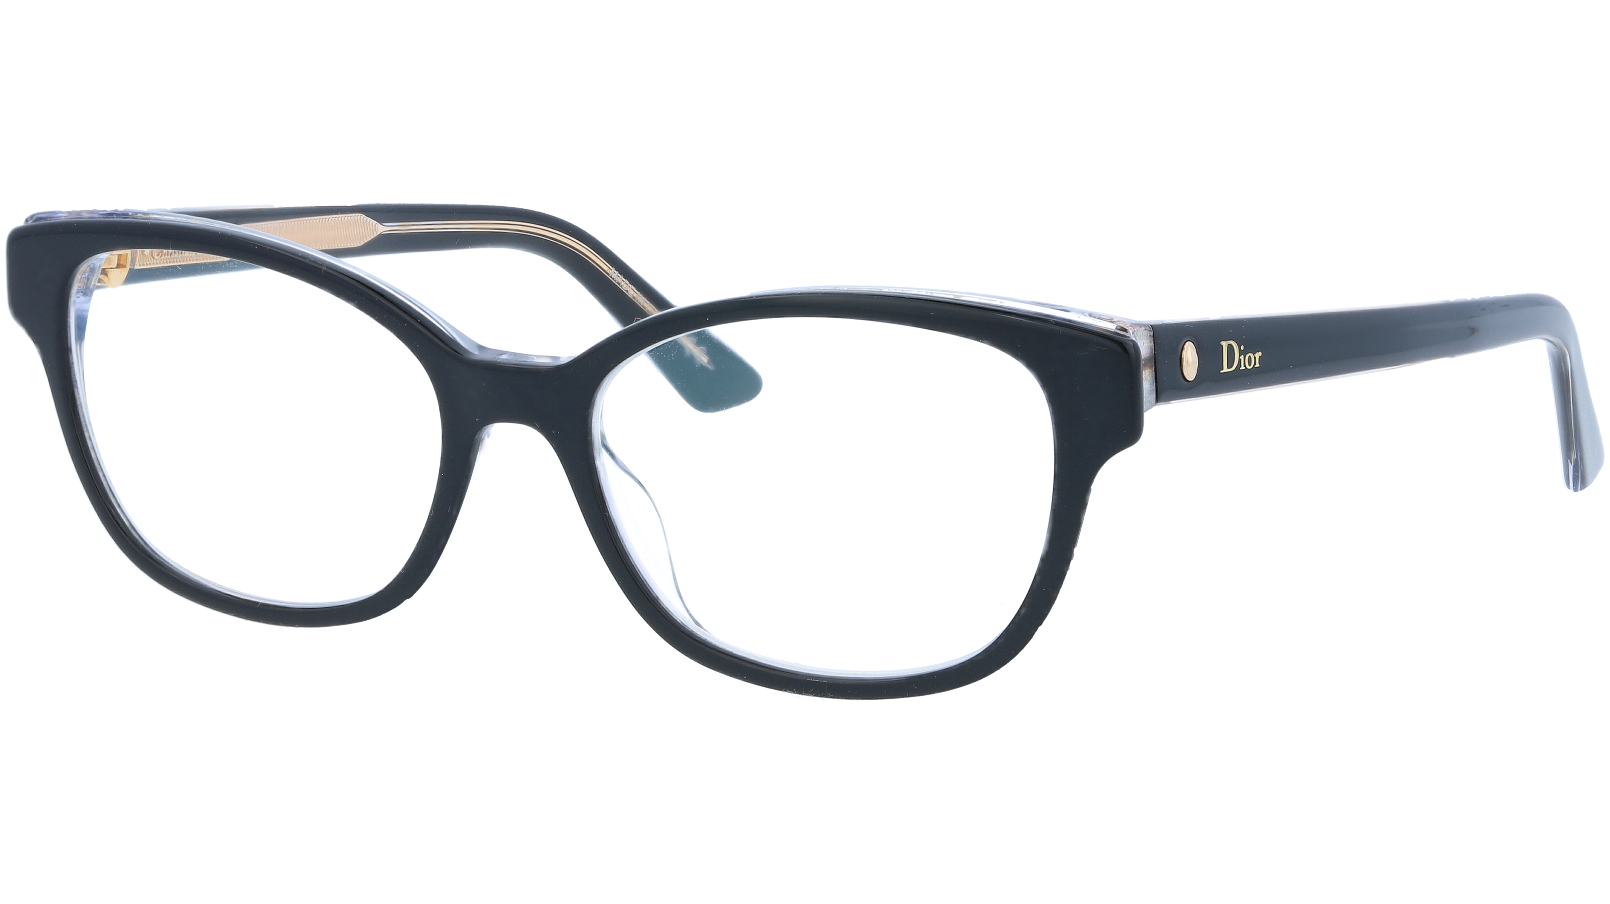 DIOR MONTAIGNE3 G99 52 BLACK Glasses